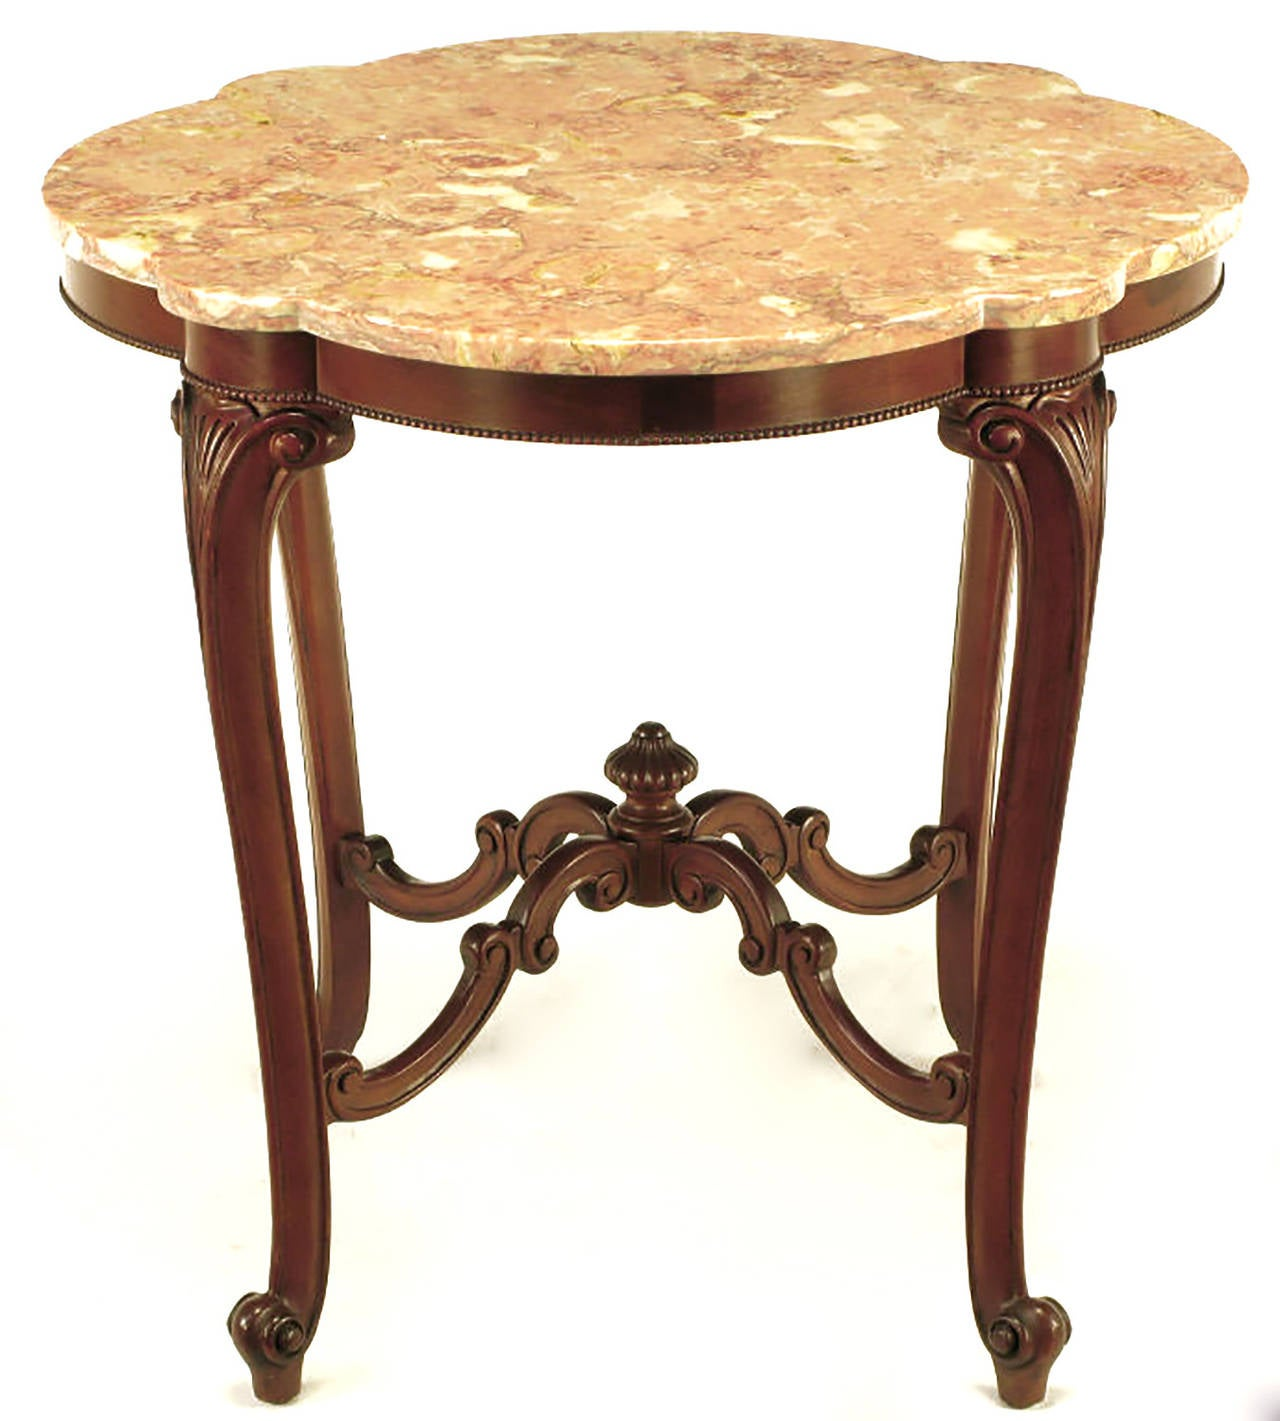 Ornately carved mahogany octofoil centre table with rouge marble top. Turned feet on splayed legs with beaded apron. Upwardly bowed four part stretcher with center finial.